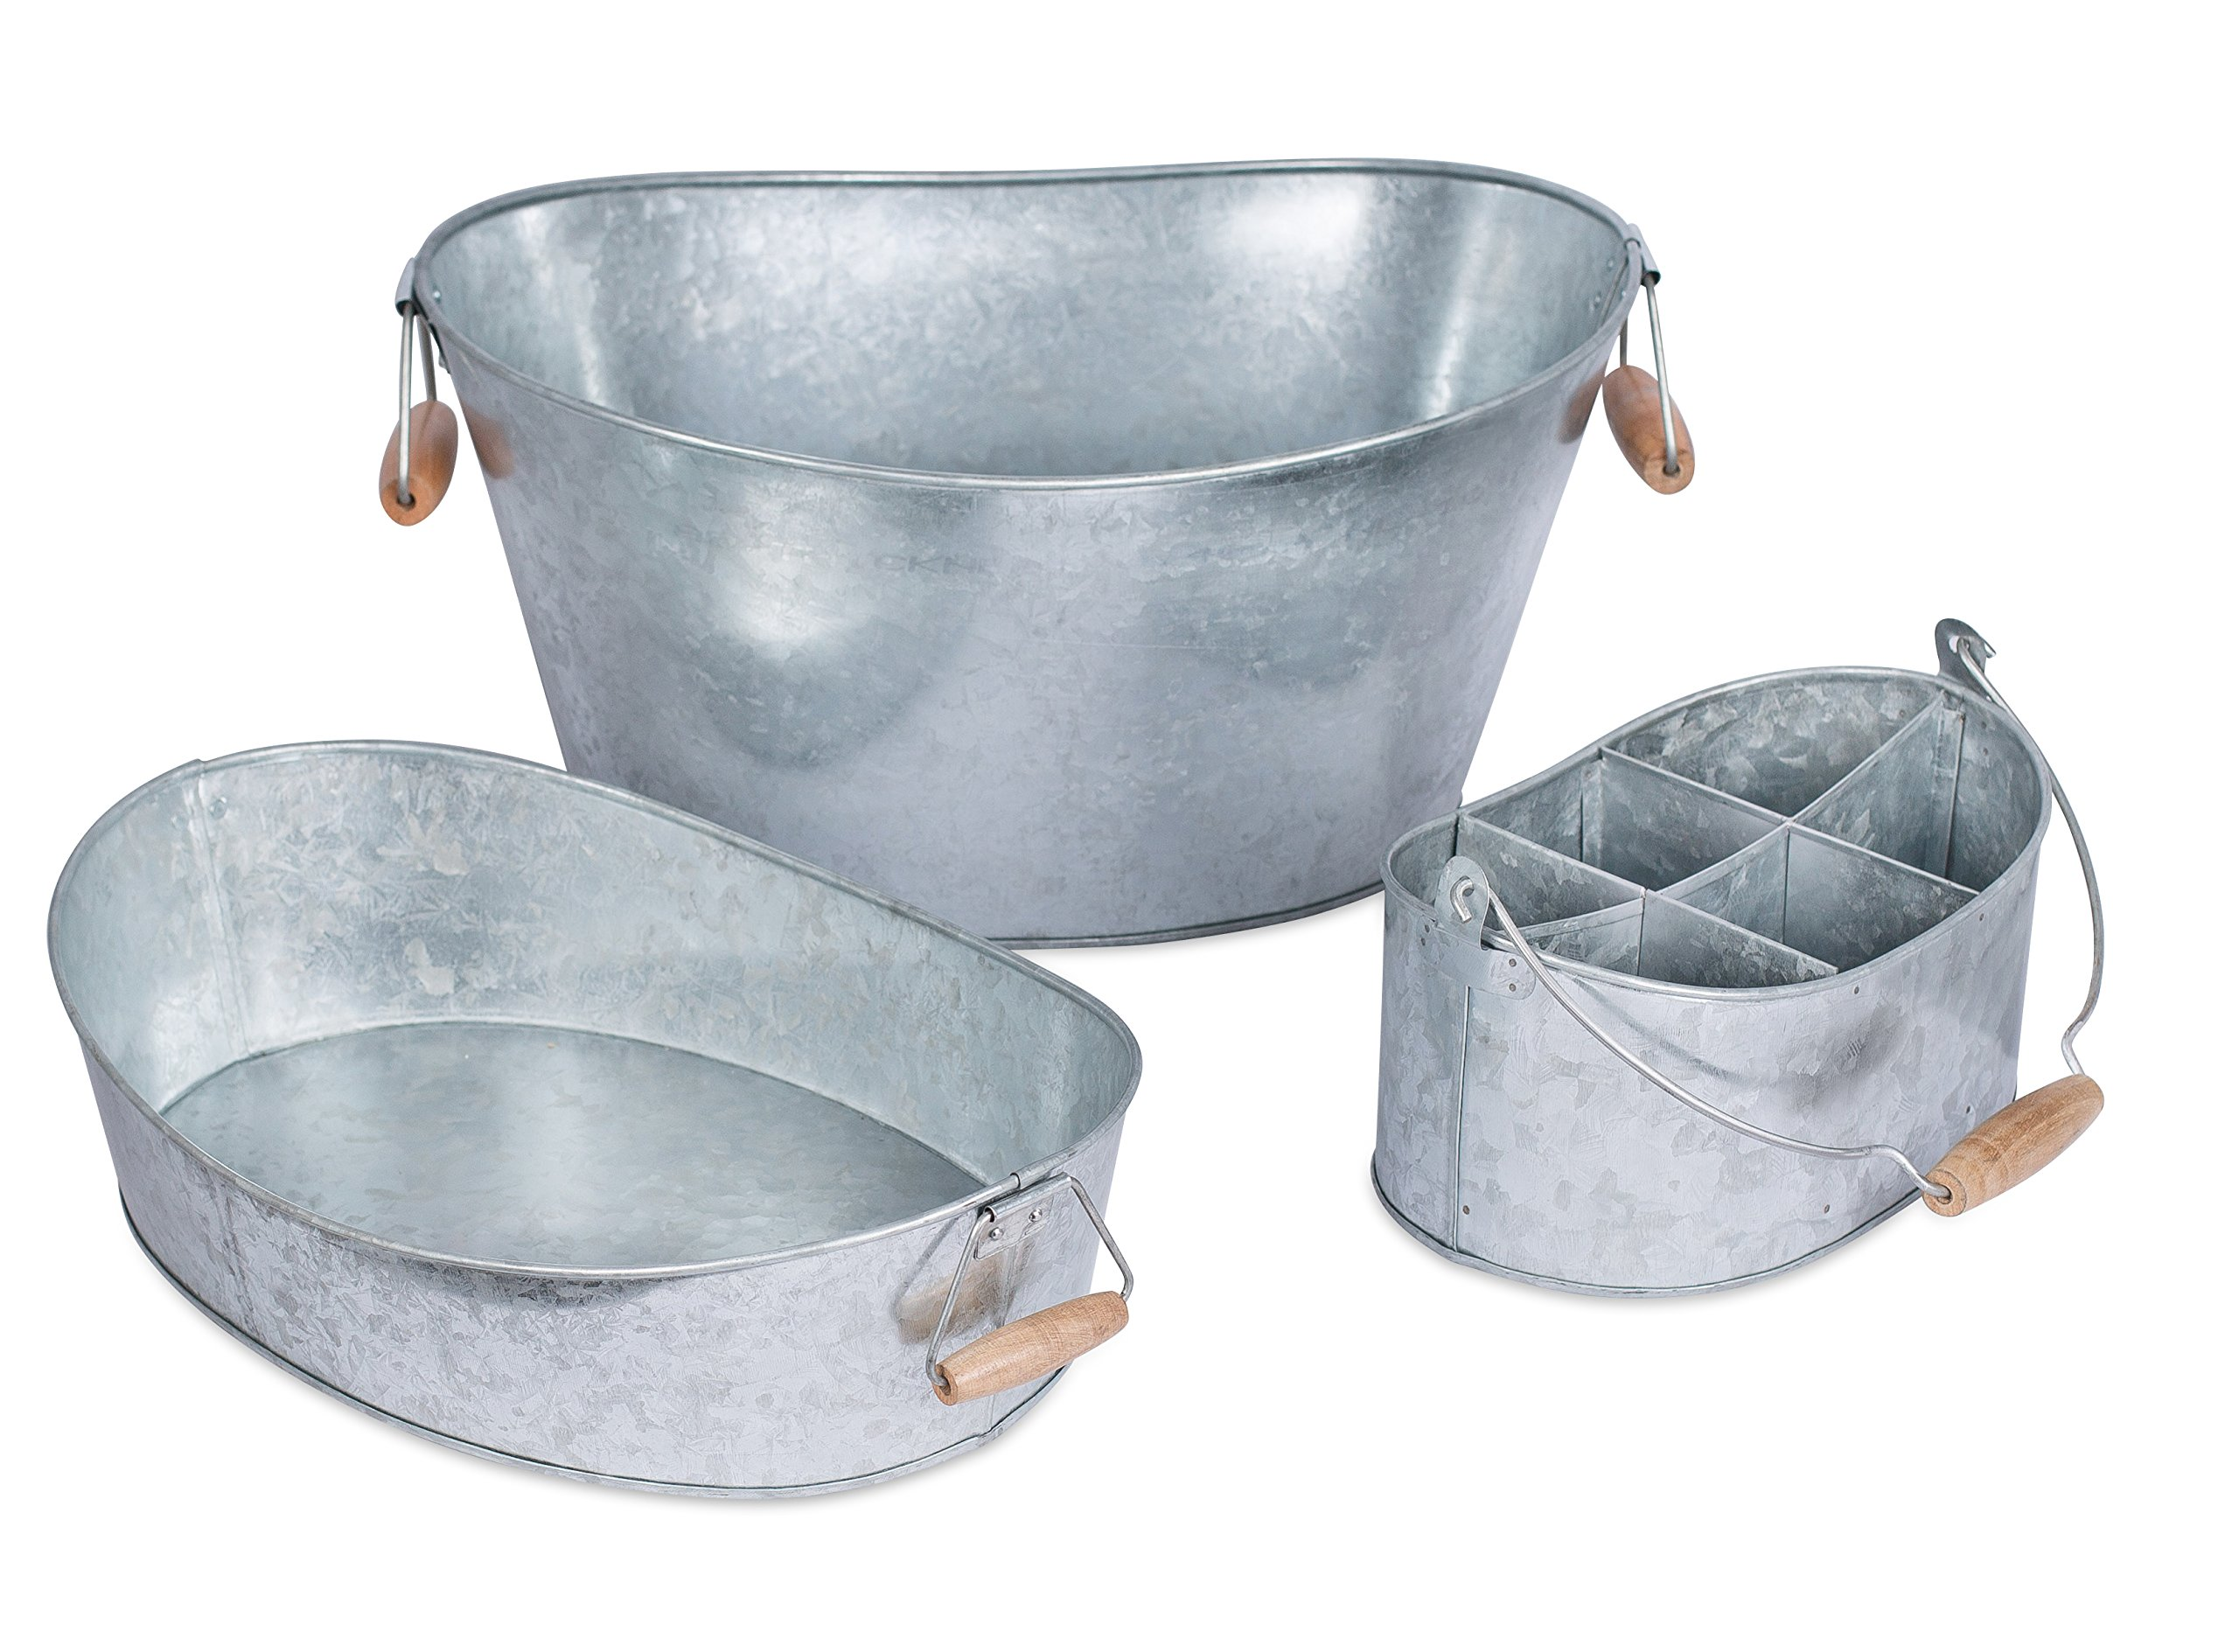 BirdRock Home Galvanized Beverage Tub, Caddy and Tray Set | 3 Piece | Party Tray Platter Drink Holder | Silverware Caddy | Wooden Handles